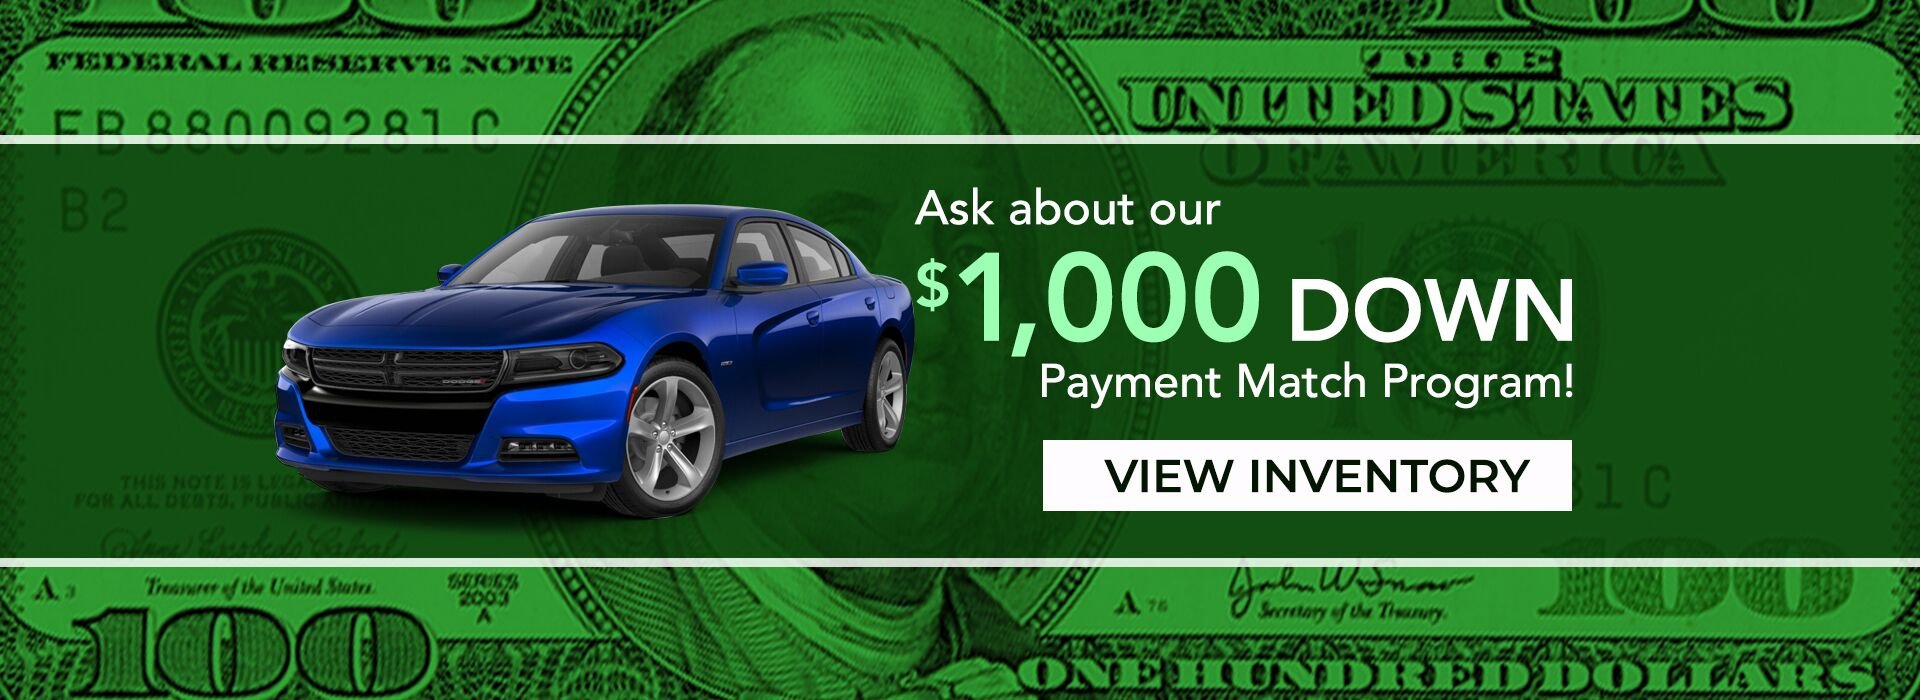 Used Car Dealerships In Columbia Sc >> Used Car Dealership Columbia Sc Drivesmart